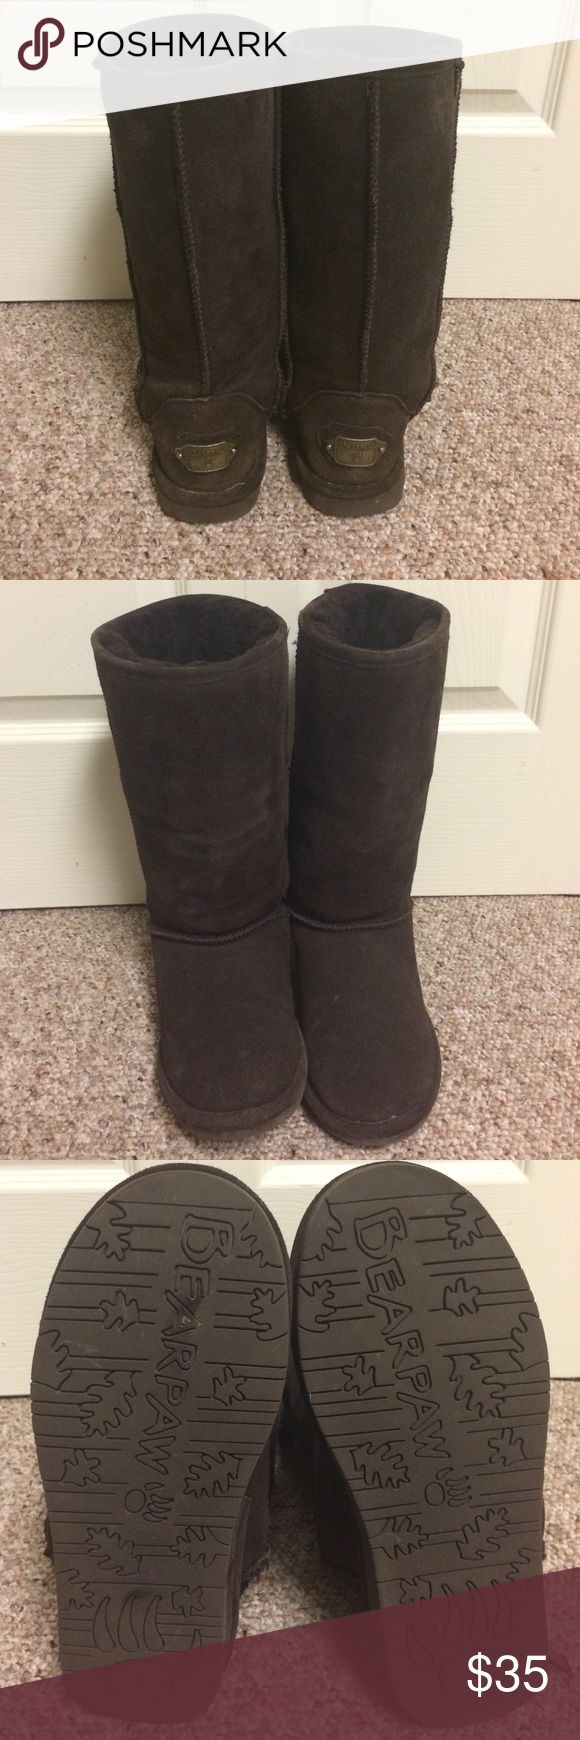 BearPaw Brown Fur Lined Boots BearPaw fur lined boots in chocolate brown.  Barely worn as you can see from the bottoms.  Very slight marking and minimal wear on the suede as noted in the pictures.  Boots are fur lined and very warm! BearPaw Shoes Winter & Rain Boots